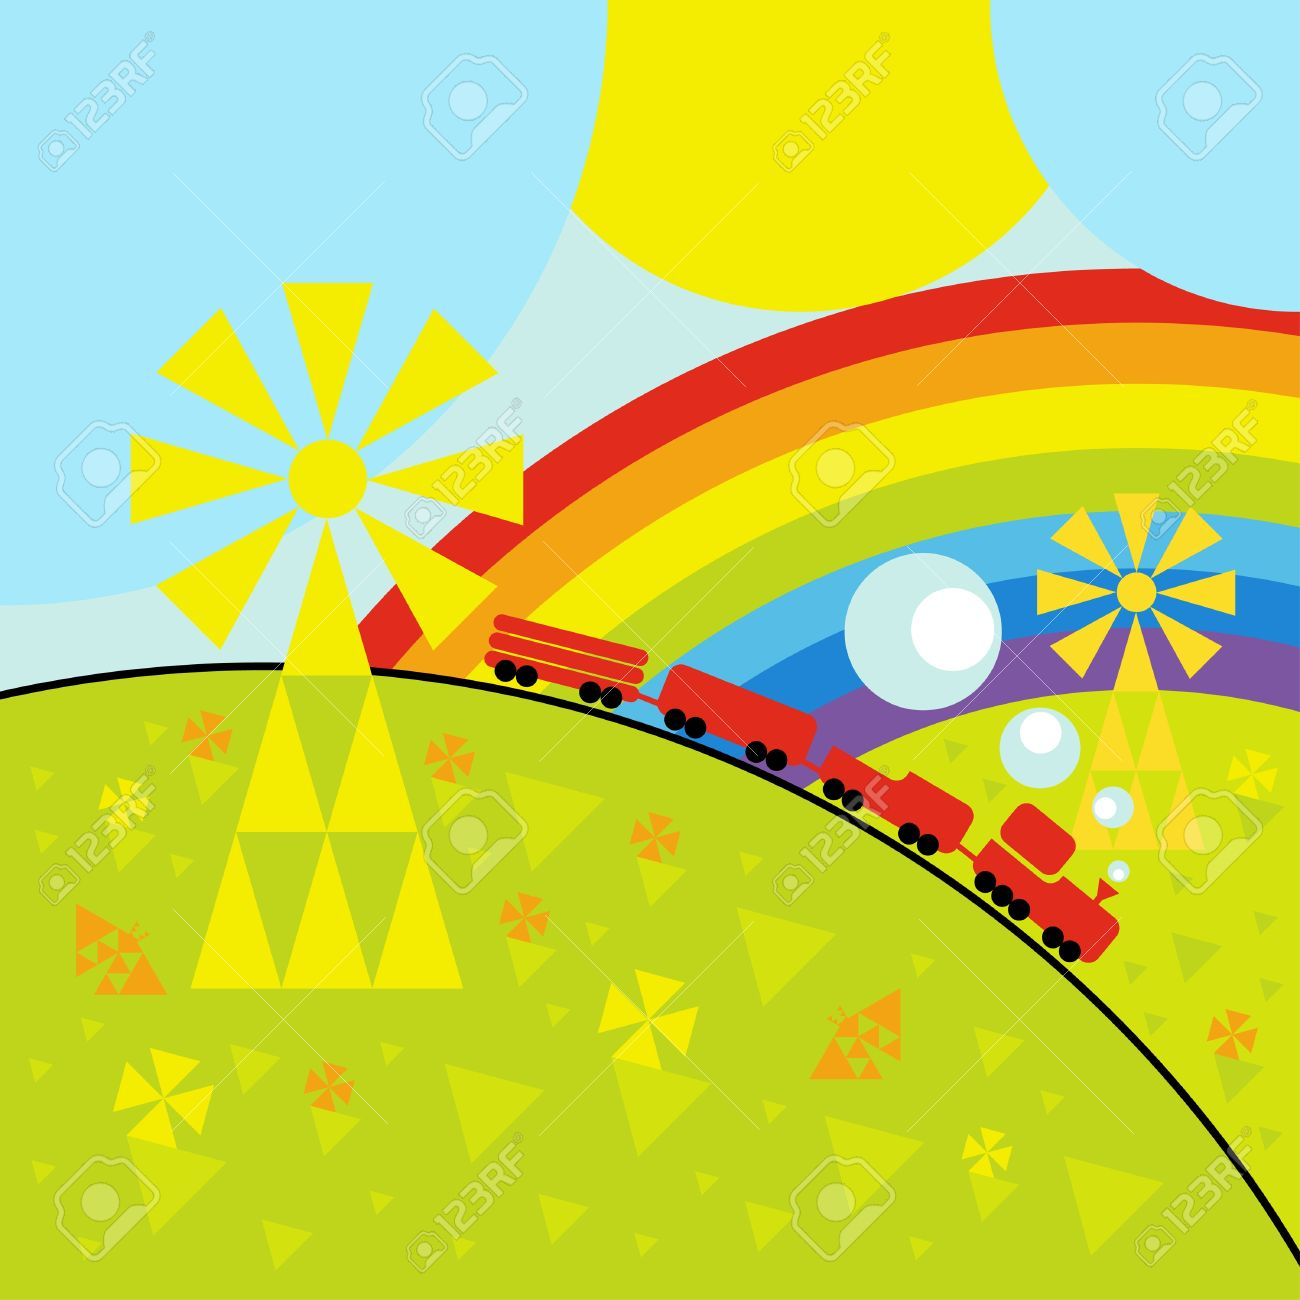 Animated Toy Train Background Illustration Royalty Free Cliparts.